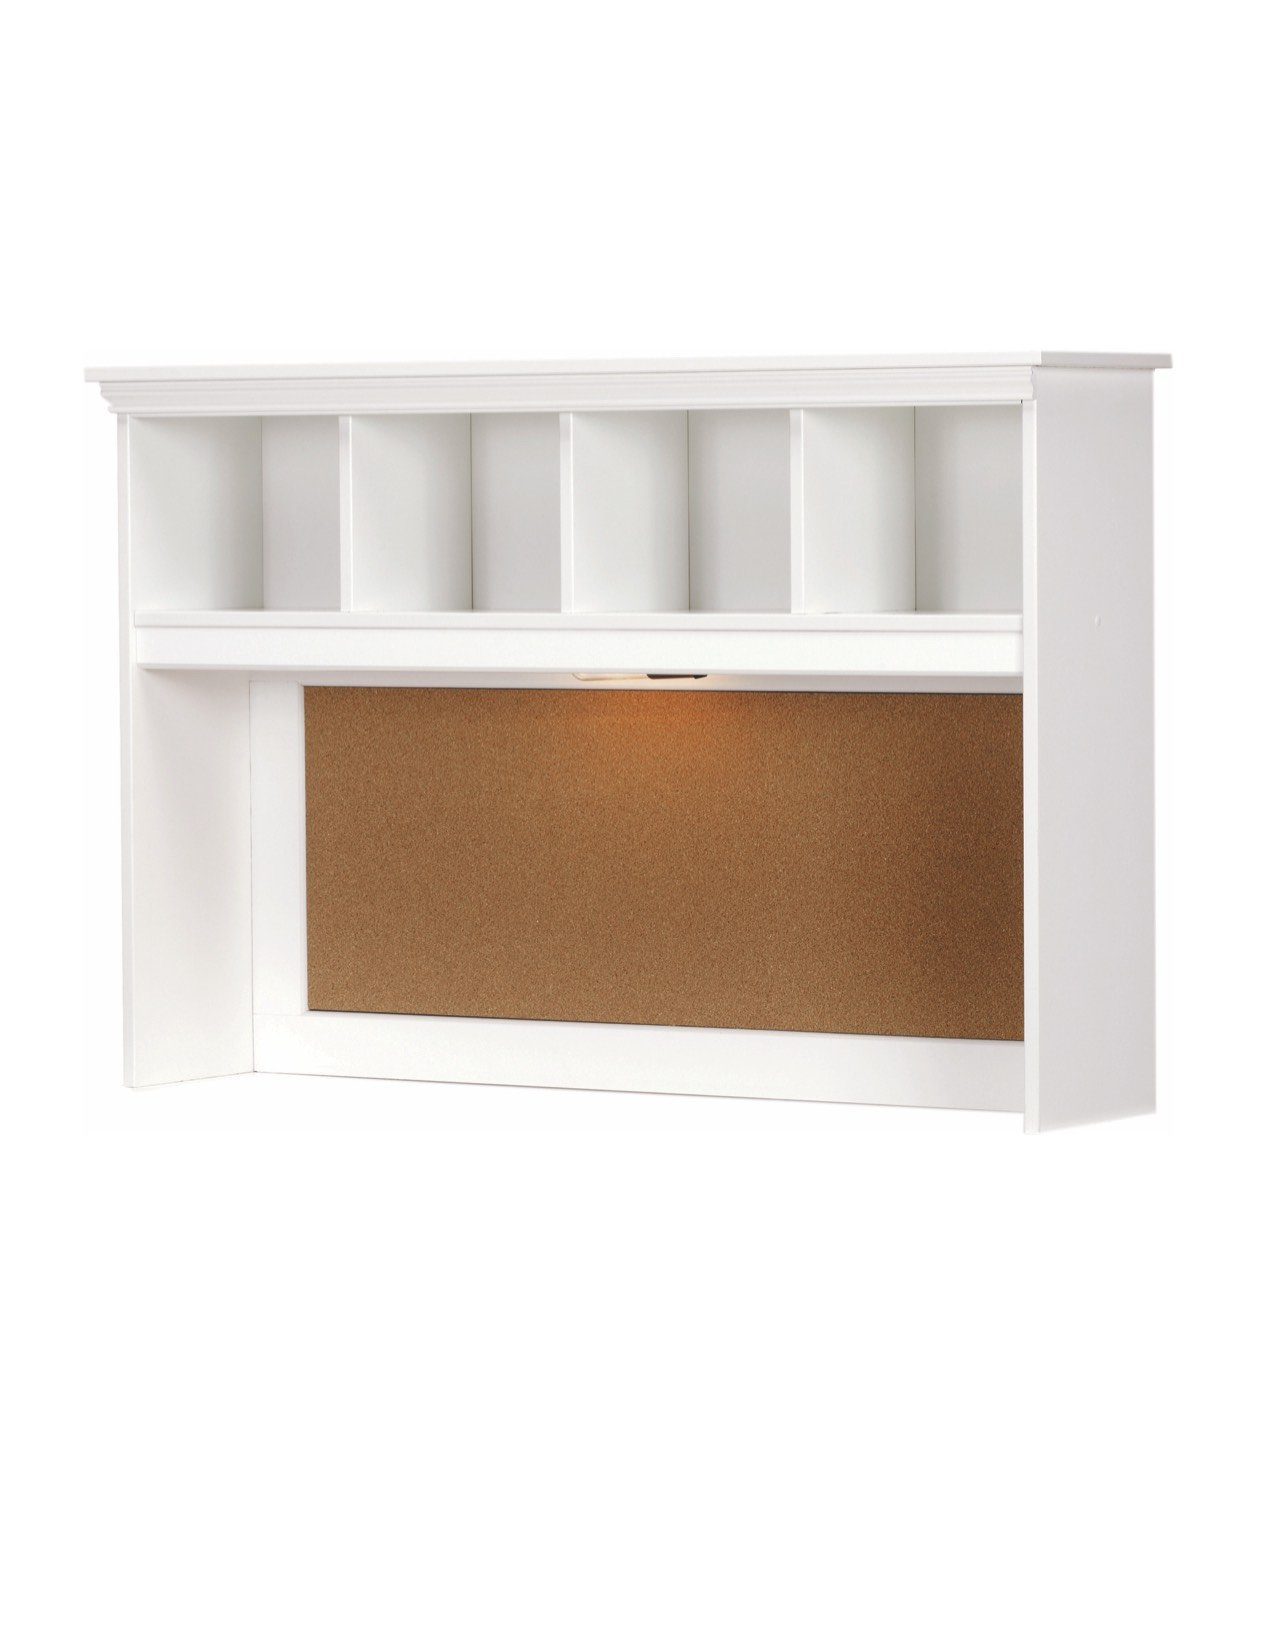 Lang Furniture Madison Desk Hutch with Light, 12 by 45 by 30-Inch, White